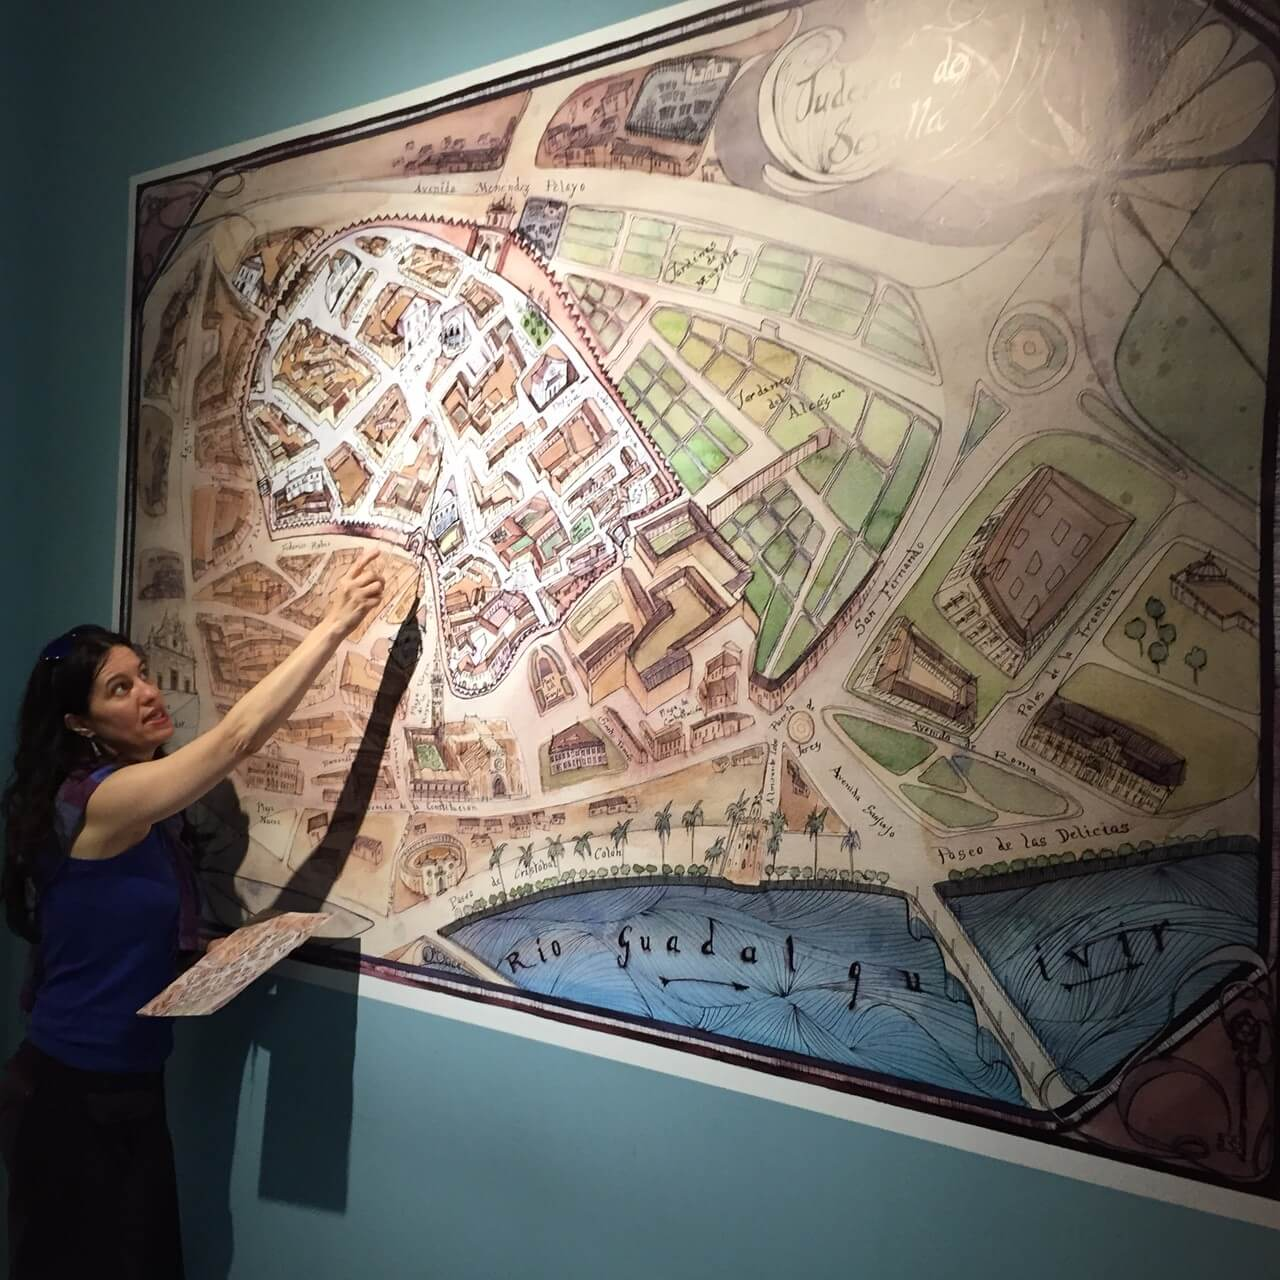 Our guide, Virginia, details a map of the ghetto where the Jews of Seville were confined under Christian rule